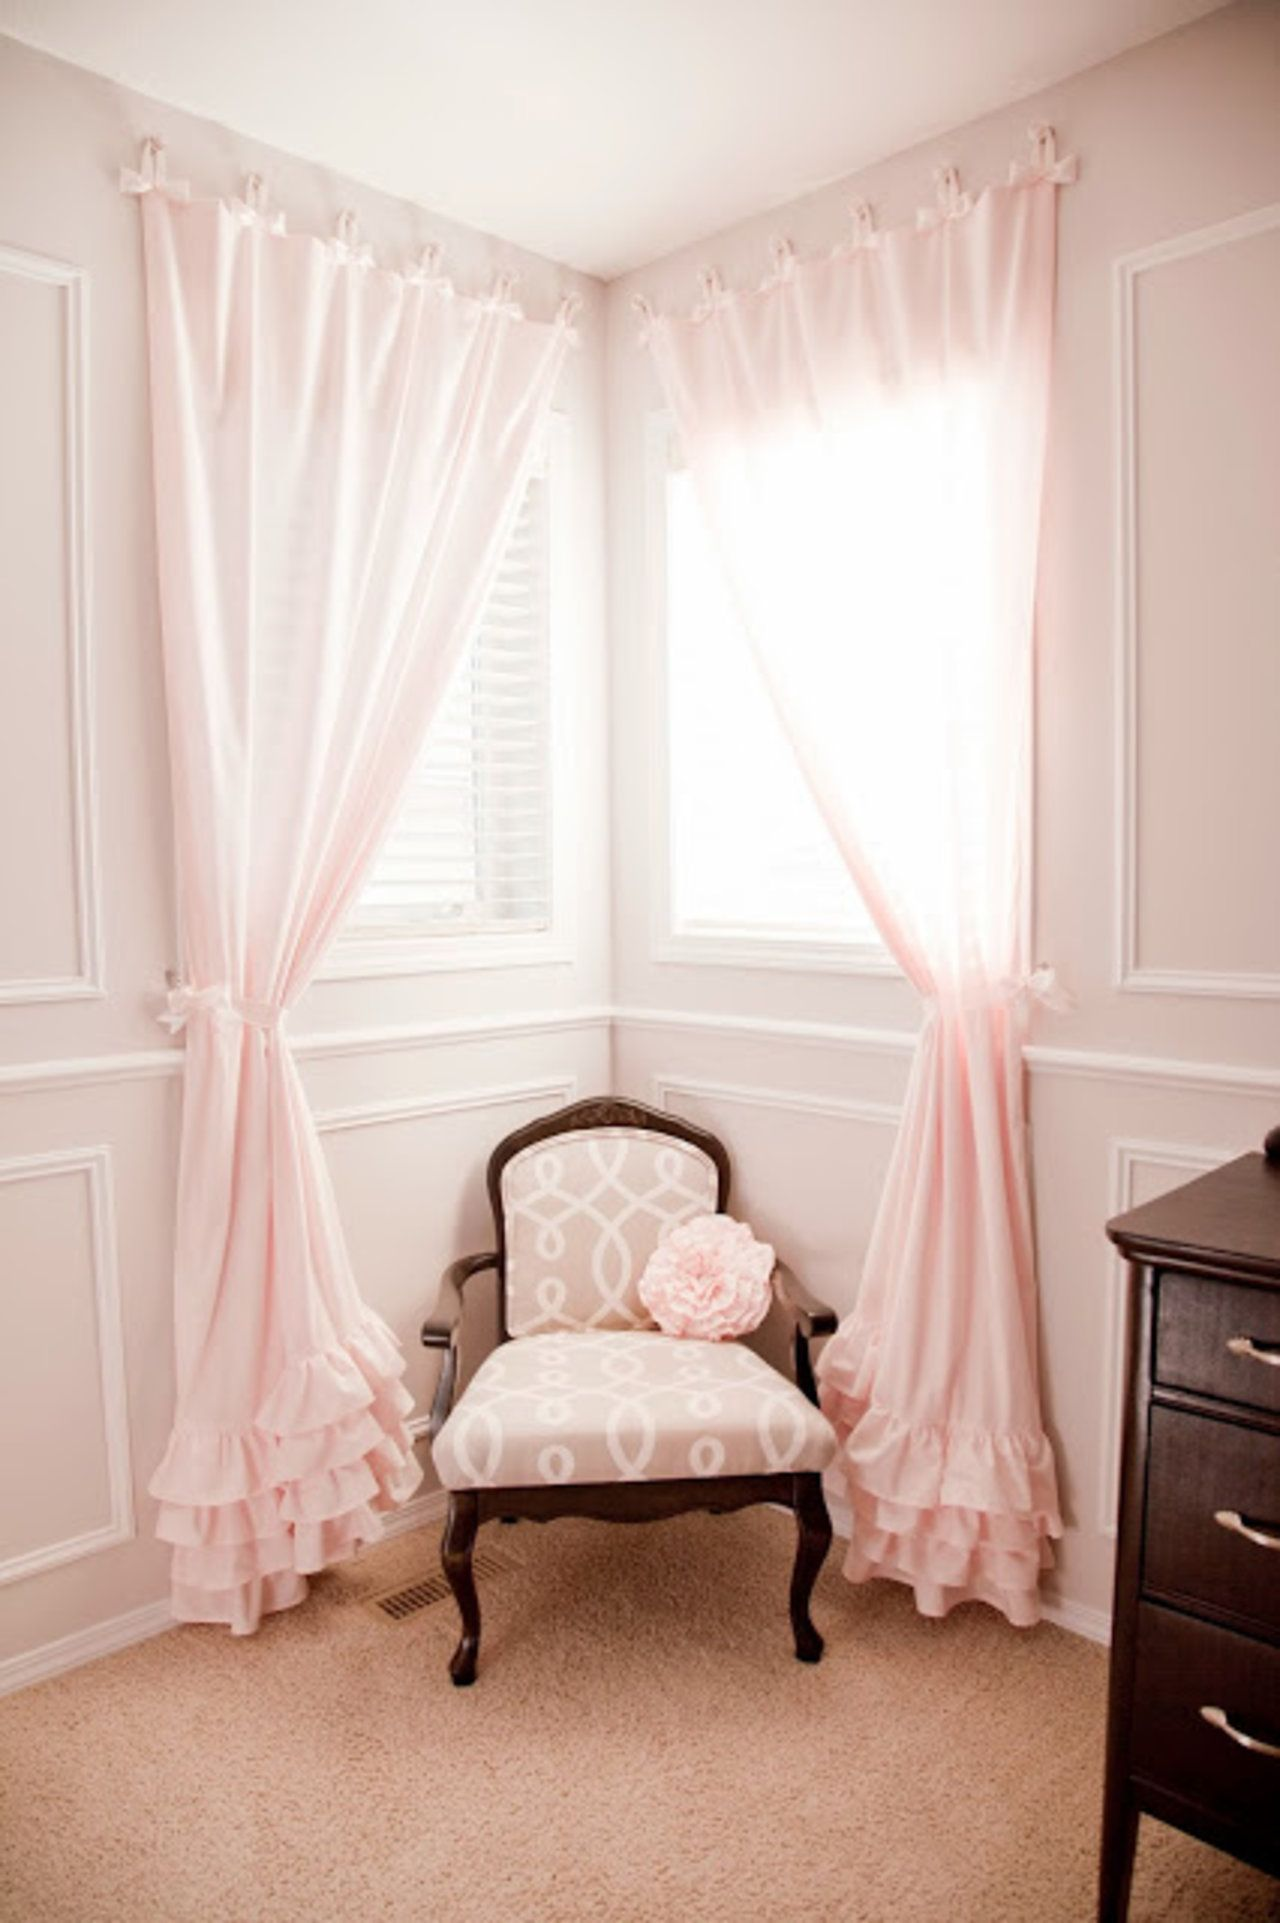 Every Awkward Window Treatment Problem Solved Bedtime Corner And Window